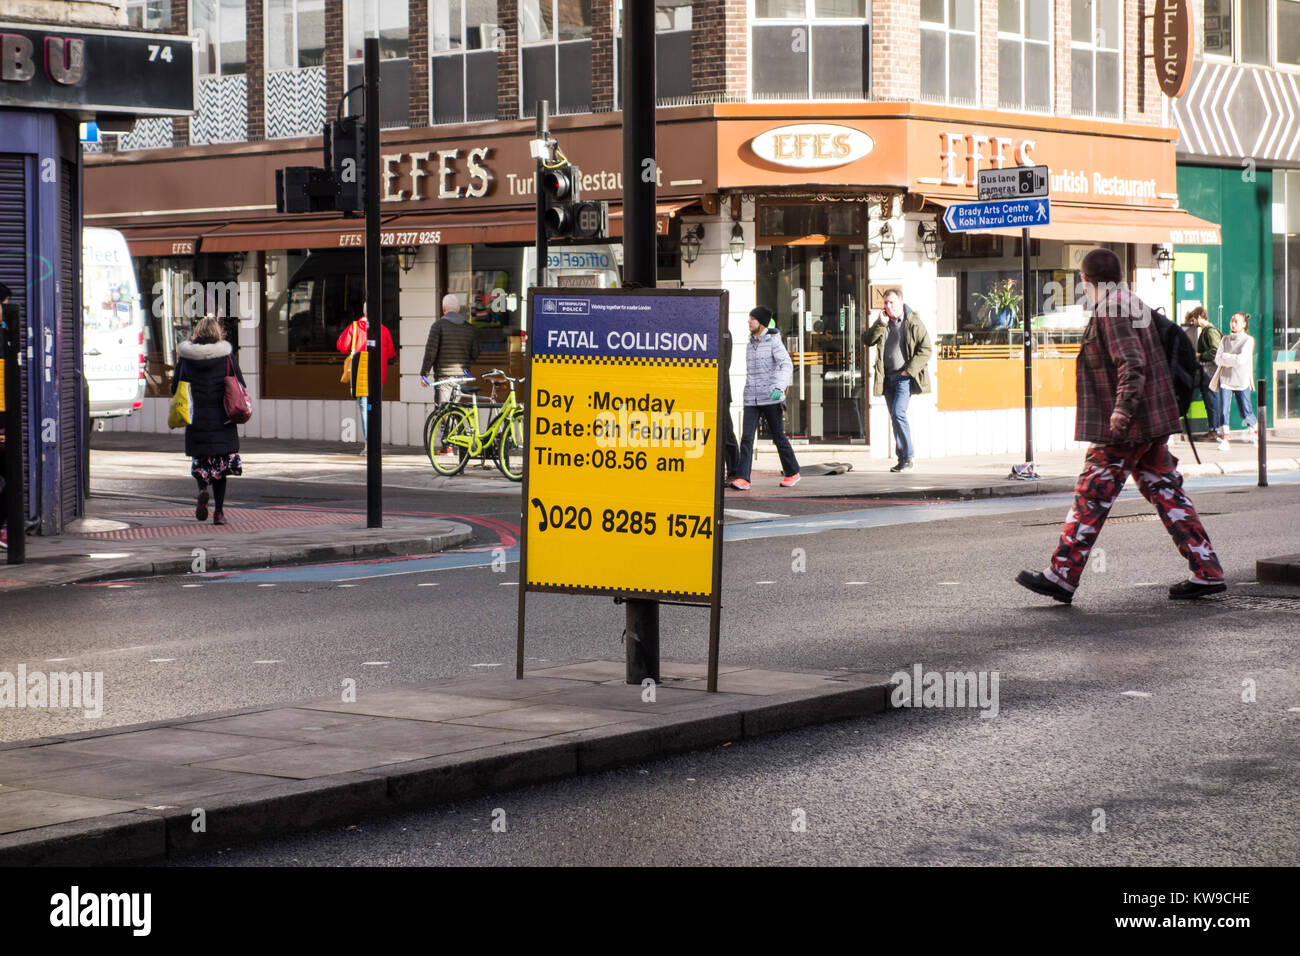 London Metropolitan Police Fatal Collision sign at a junction on the A11 in Whitechapel, east London, UK - Stock Image